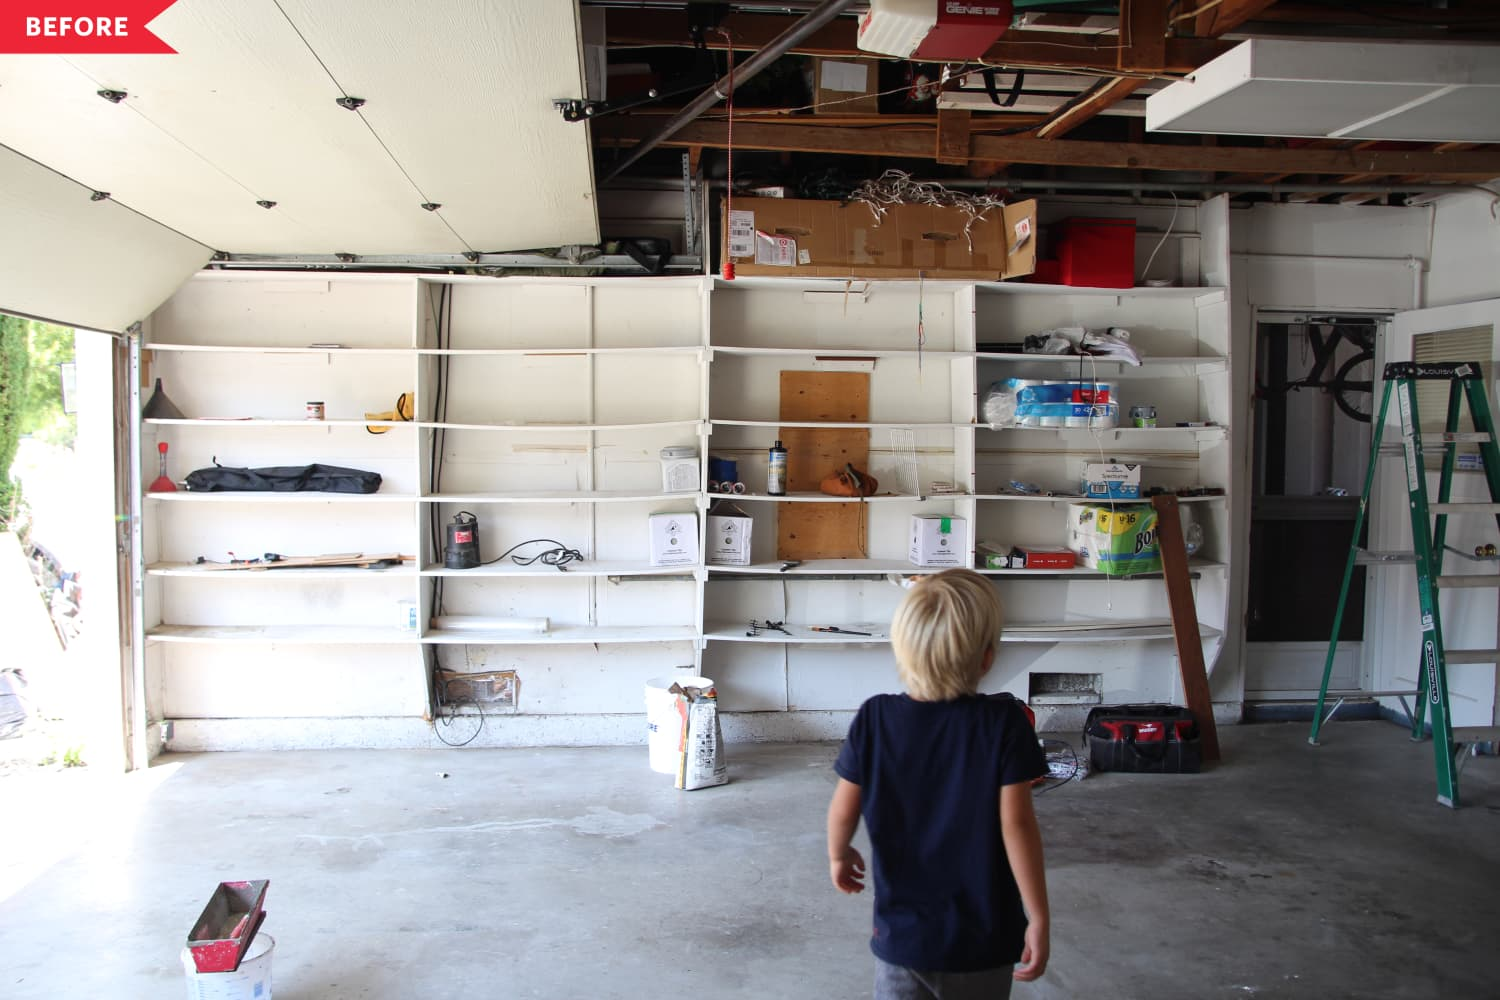 This Lifestyle Blogger's Renovation Turns a Garage into a Practical Paradise